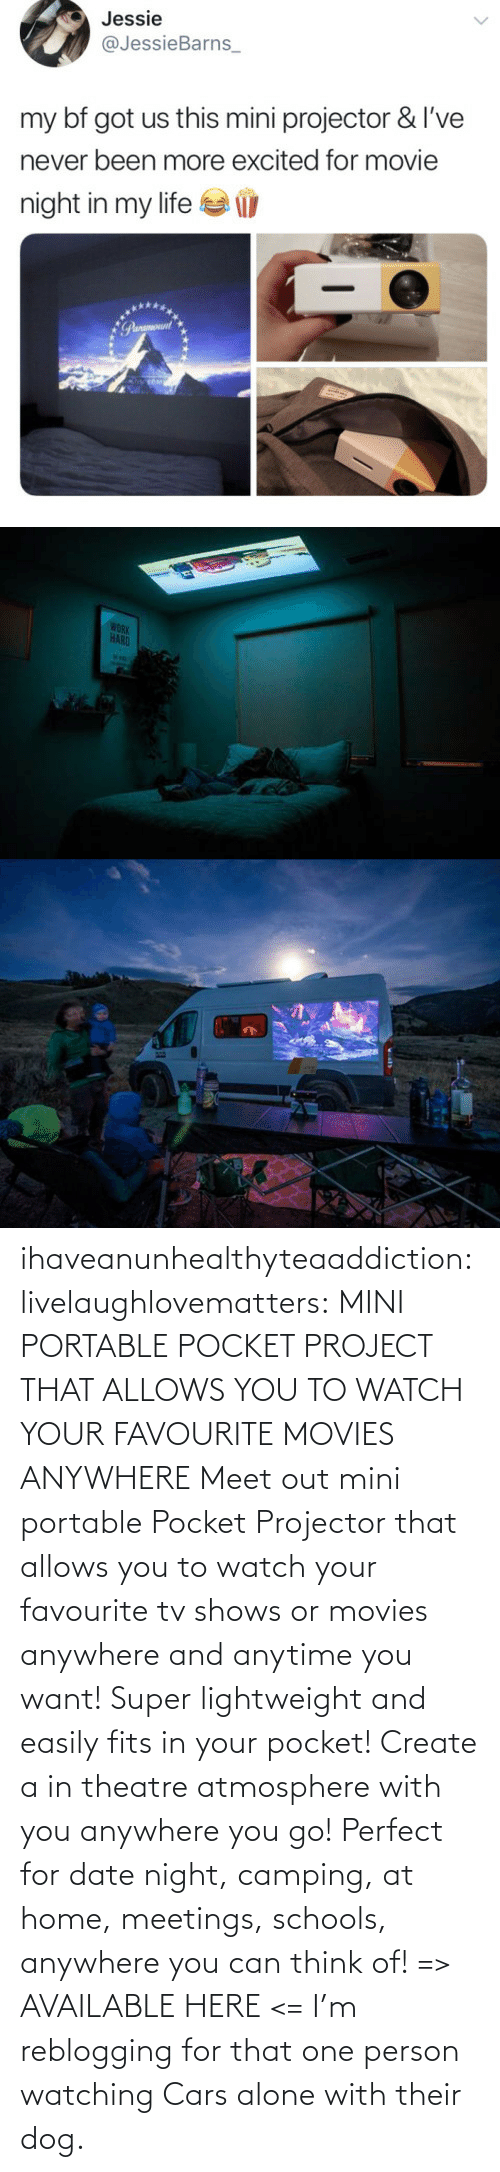 with you: ihaveanunhealthyteaaddiction:  livelaughlovematters: MINI PORTABLE POCKET PROJECT THAT ALLOWS YOU TO WATCH YOUR FAVOURITE MOVIES ANYWHERE Meet out mini portable Pocket Projector that allows you to watch your favourite tv shows or movies anywhere and anytime you want! Super lightweight and easily fits in your pocket! Create a in theatre atmosphere with you anywhere you go! Perfect for date night, camping, at home, meetings, schools, anywhere you can think of! => AVAILABLE HERE <=    I'm reblogging for that one person watching Cars alone with their dog.